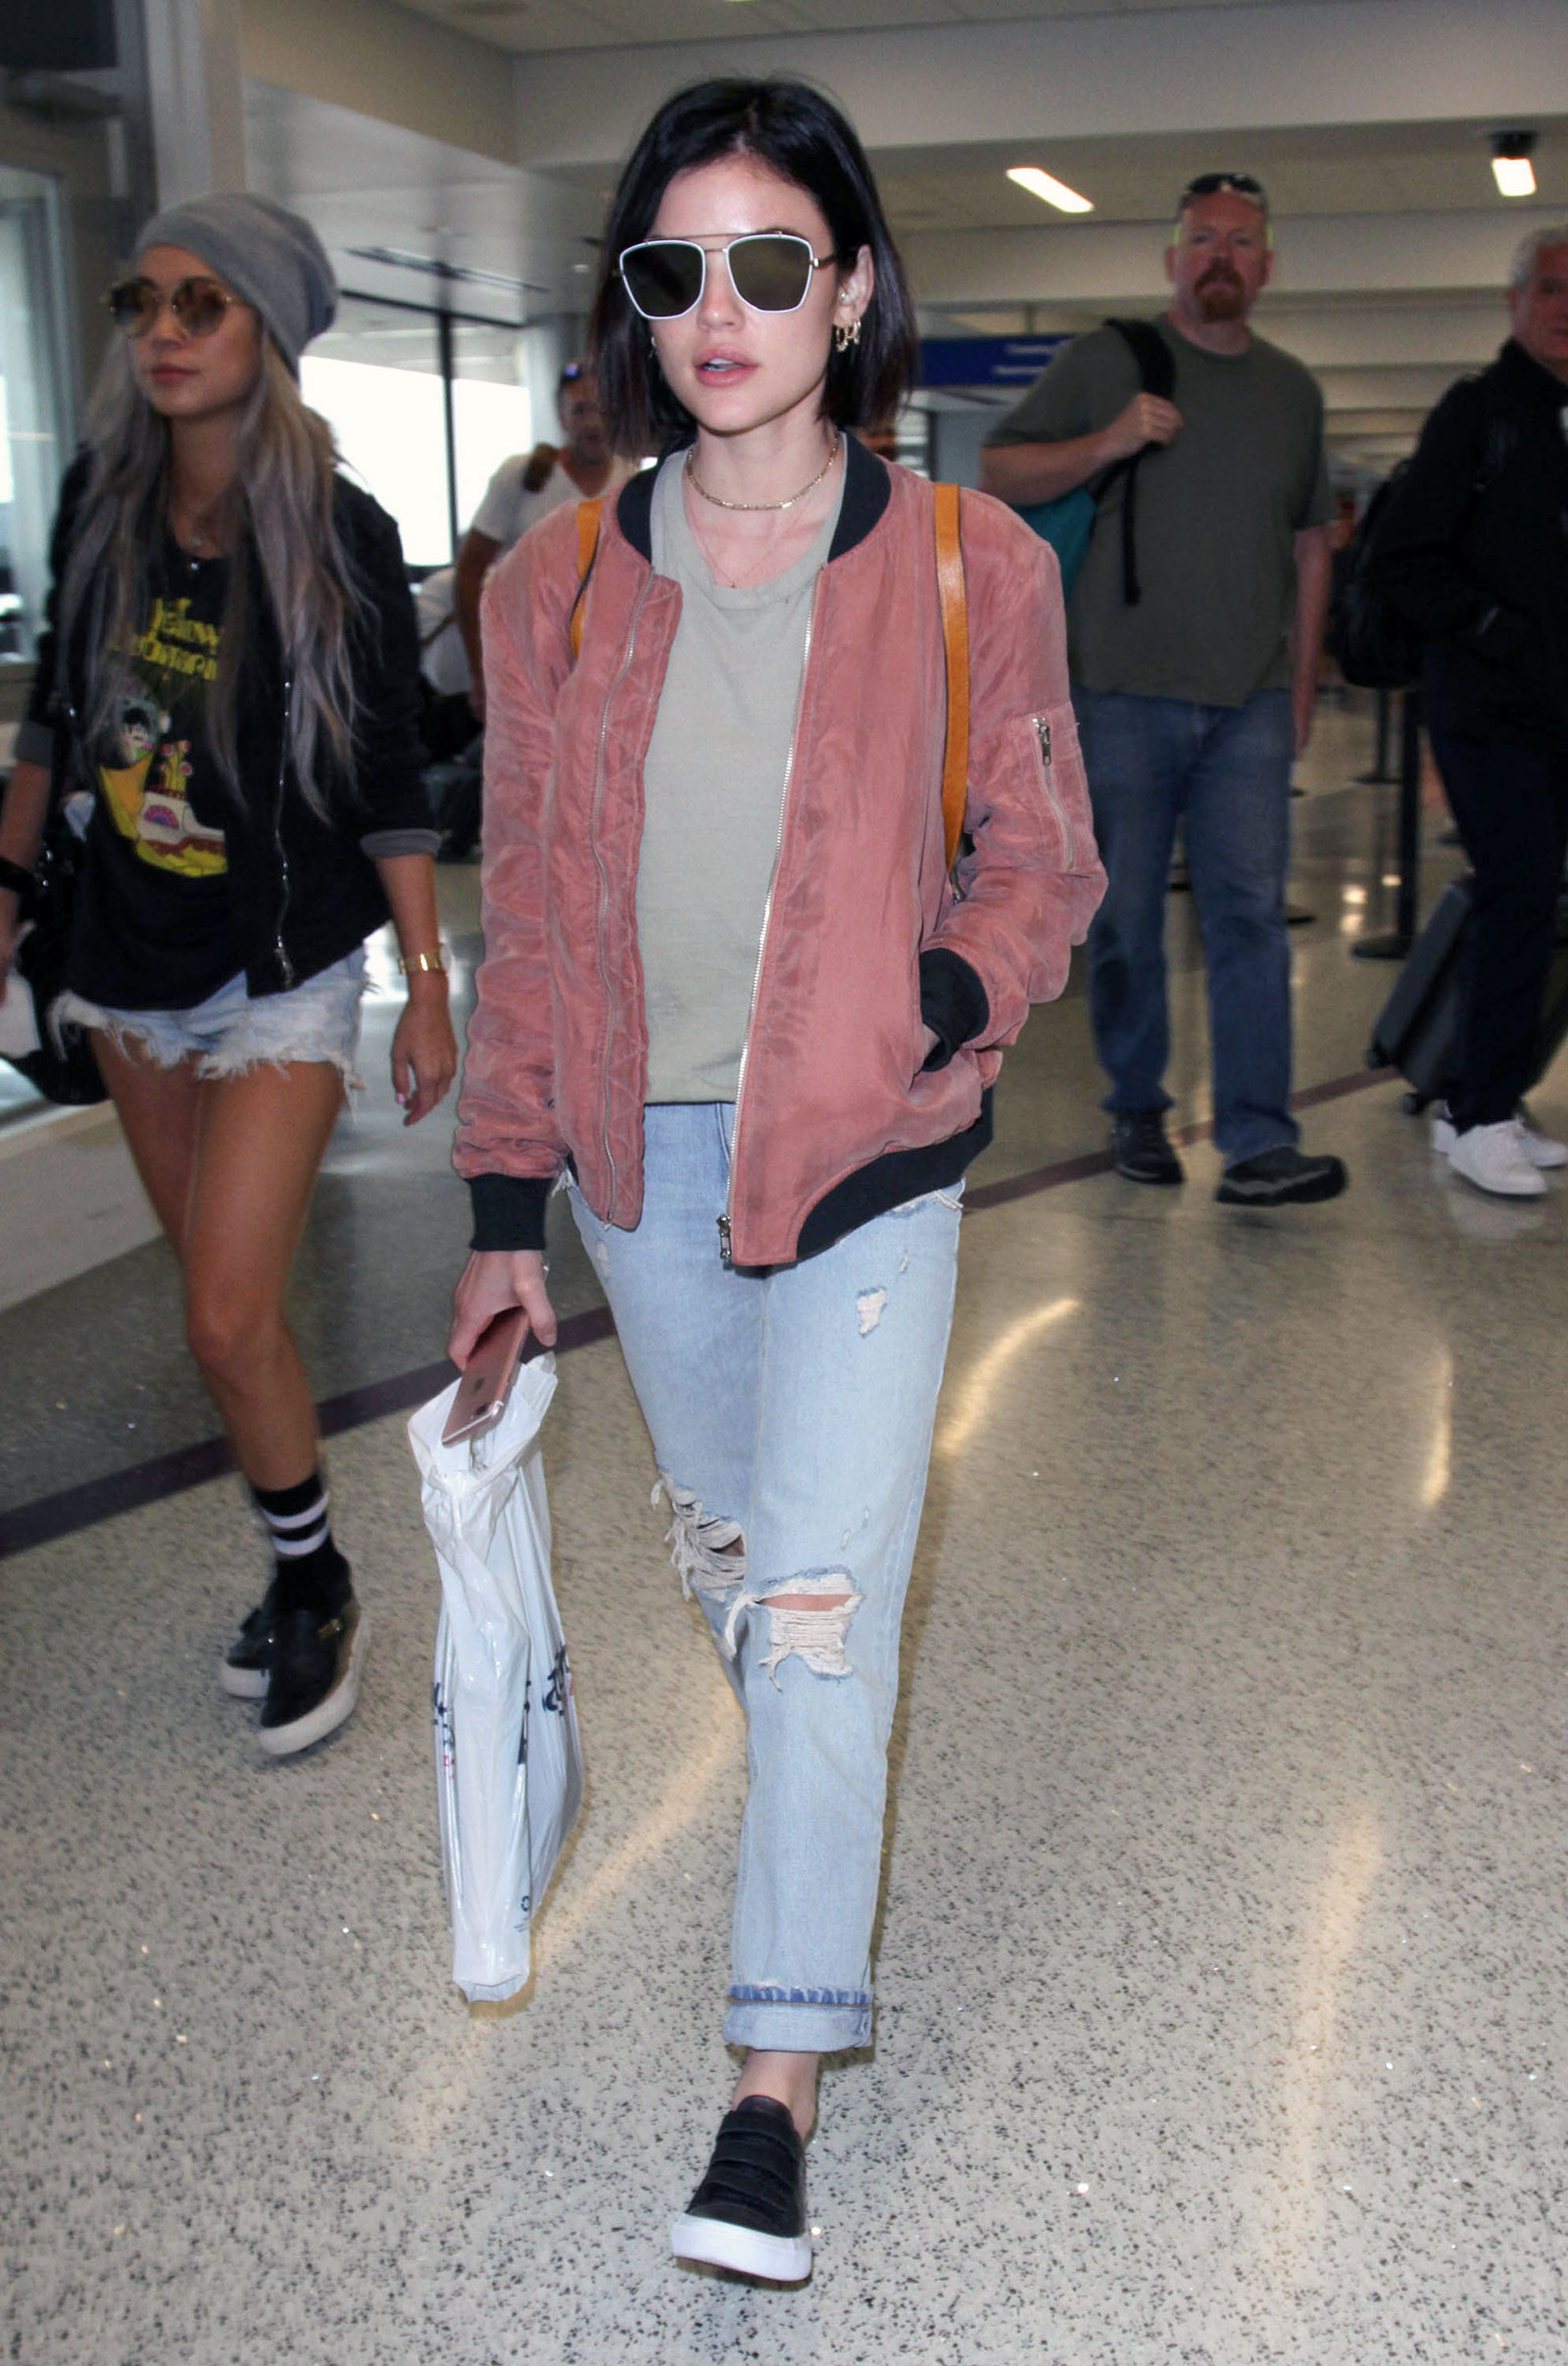 Lucy Hale's airport style is a comfy blush pink bomber and boyfriend jeans.